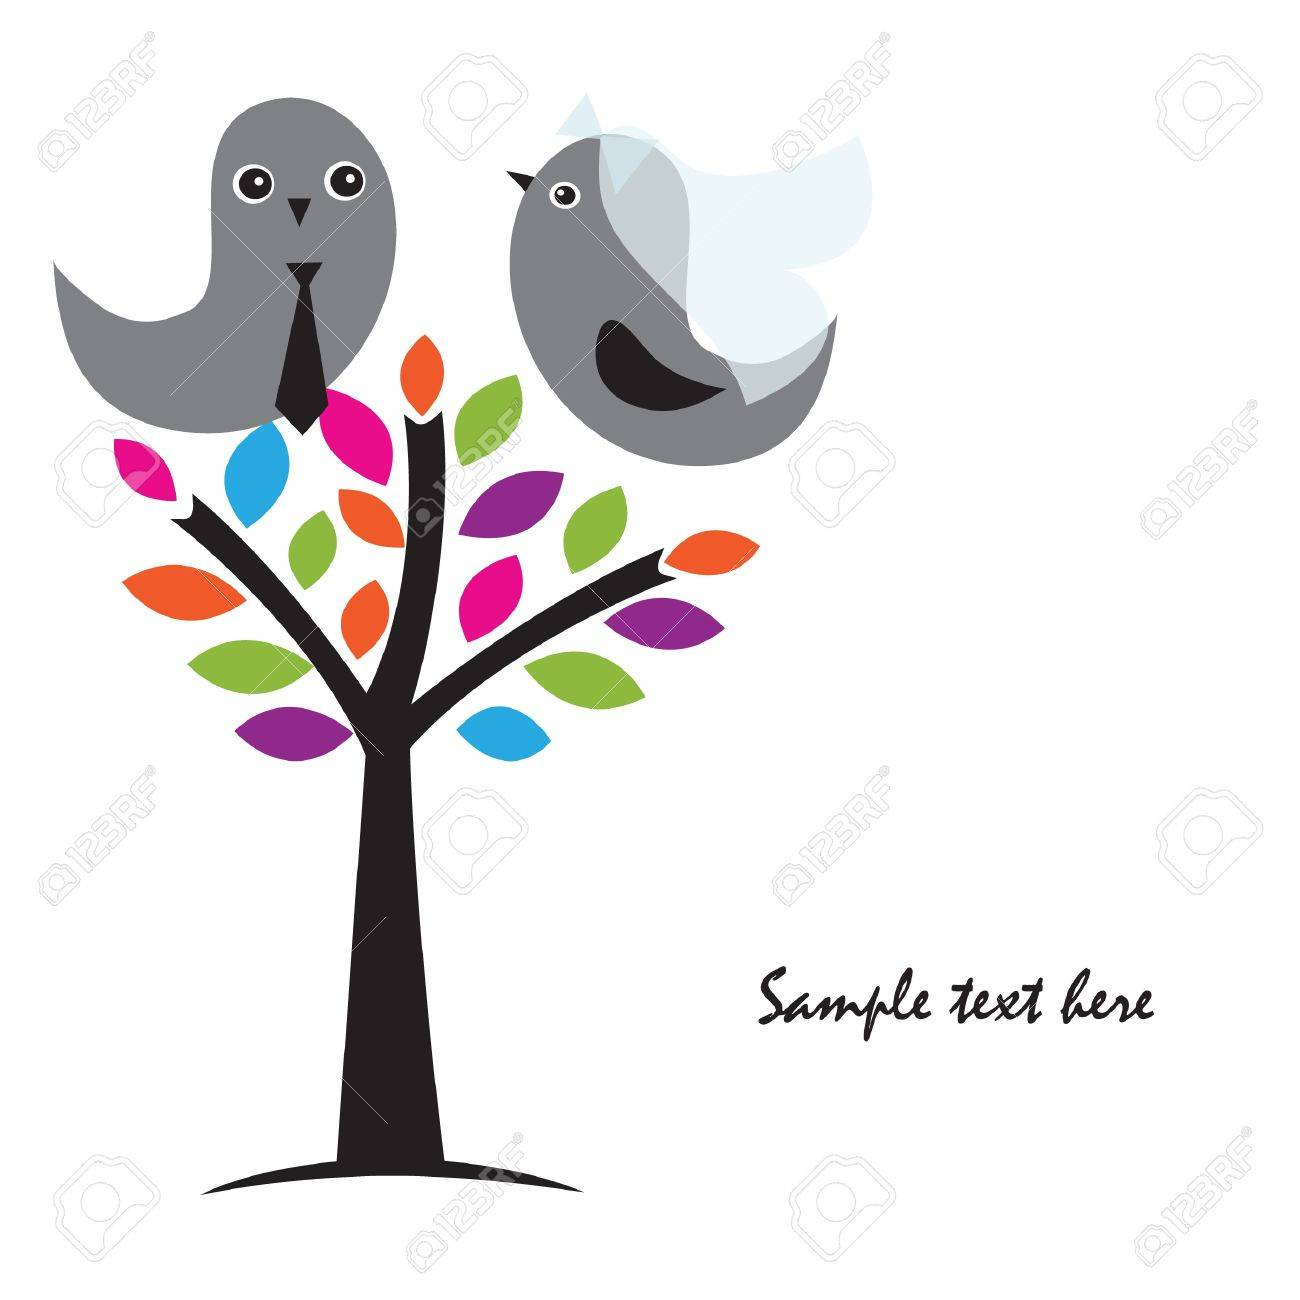 Wedding invitation with two cute birds in bride and groom costumes Stock Photo - 10324975